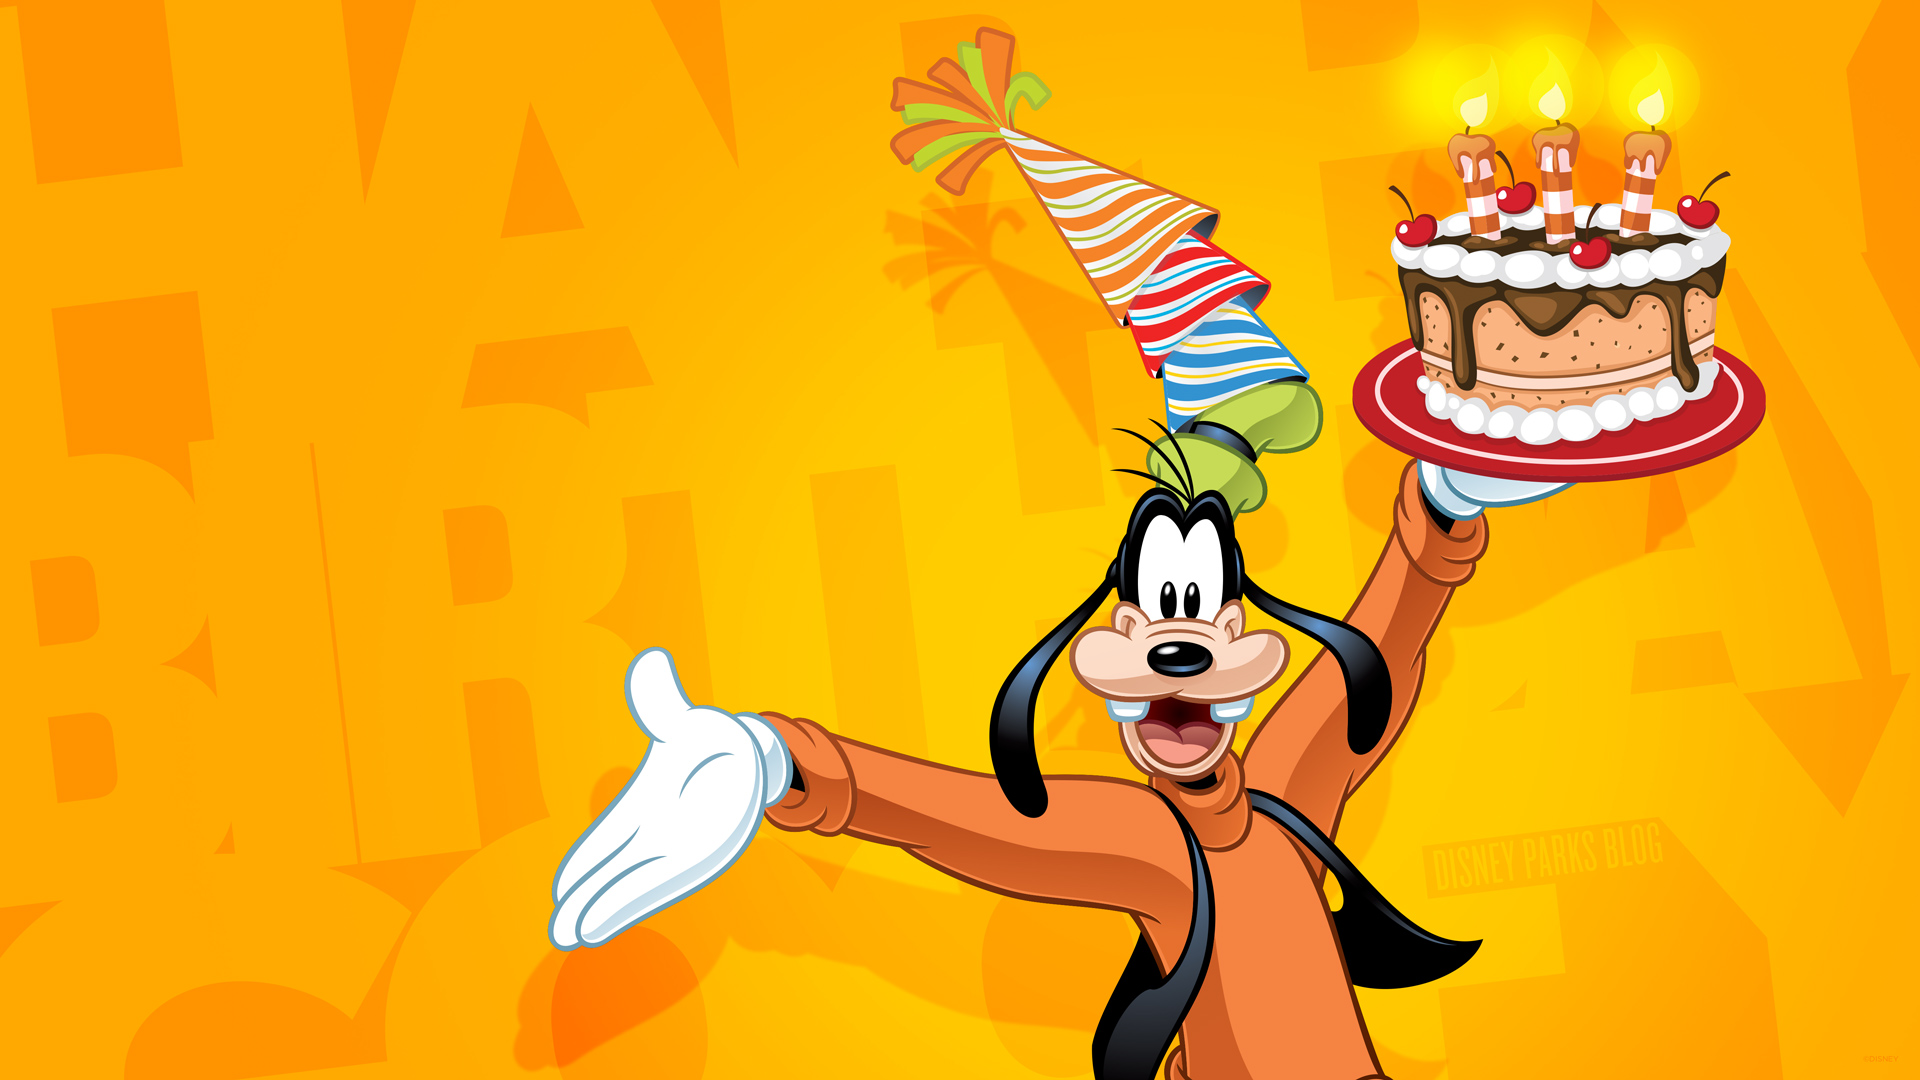 Goofy S Anniversary Desktop Wallpaper Disney Parks Blog